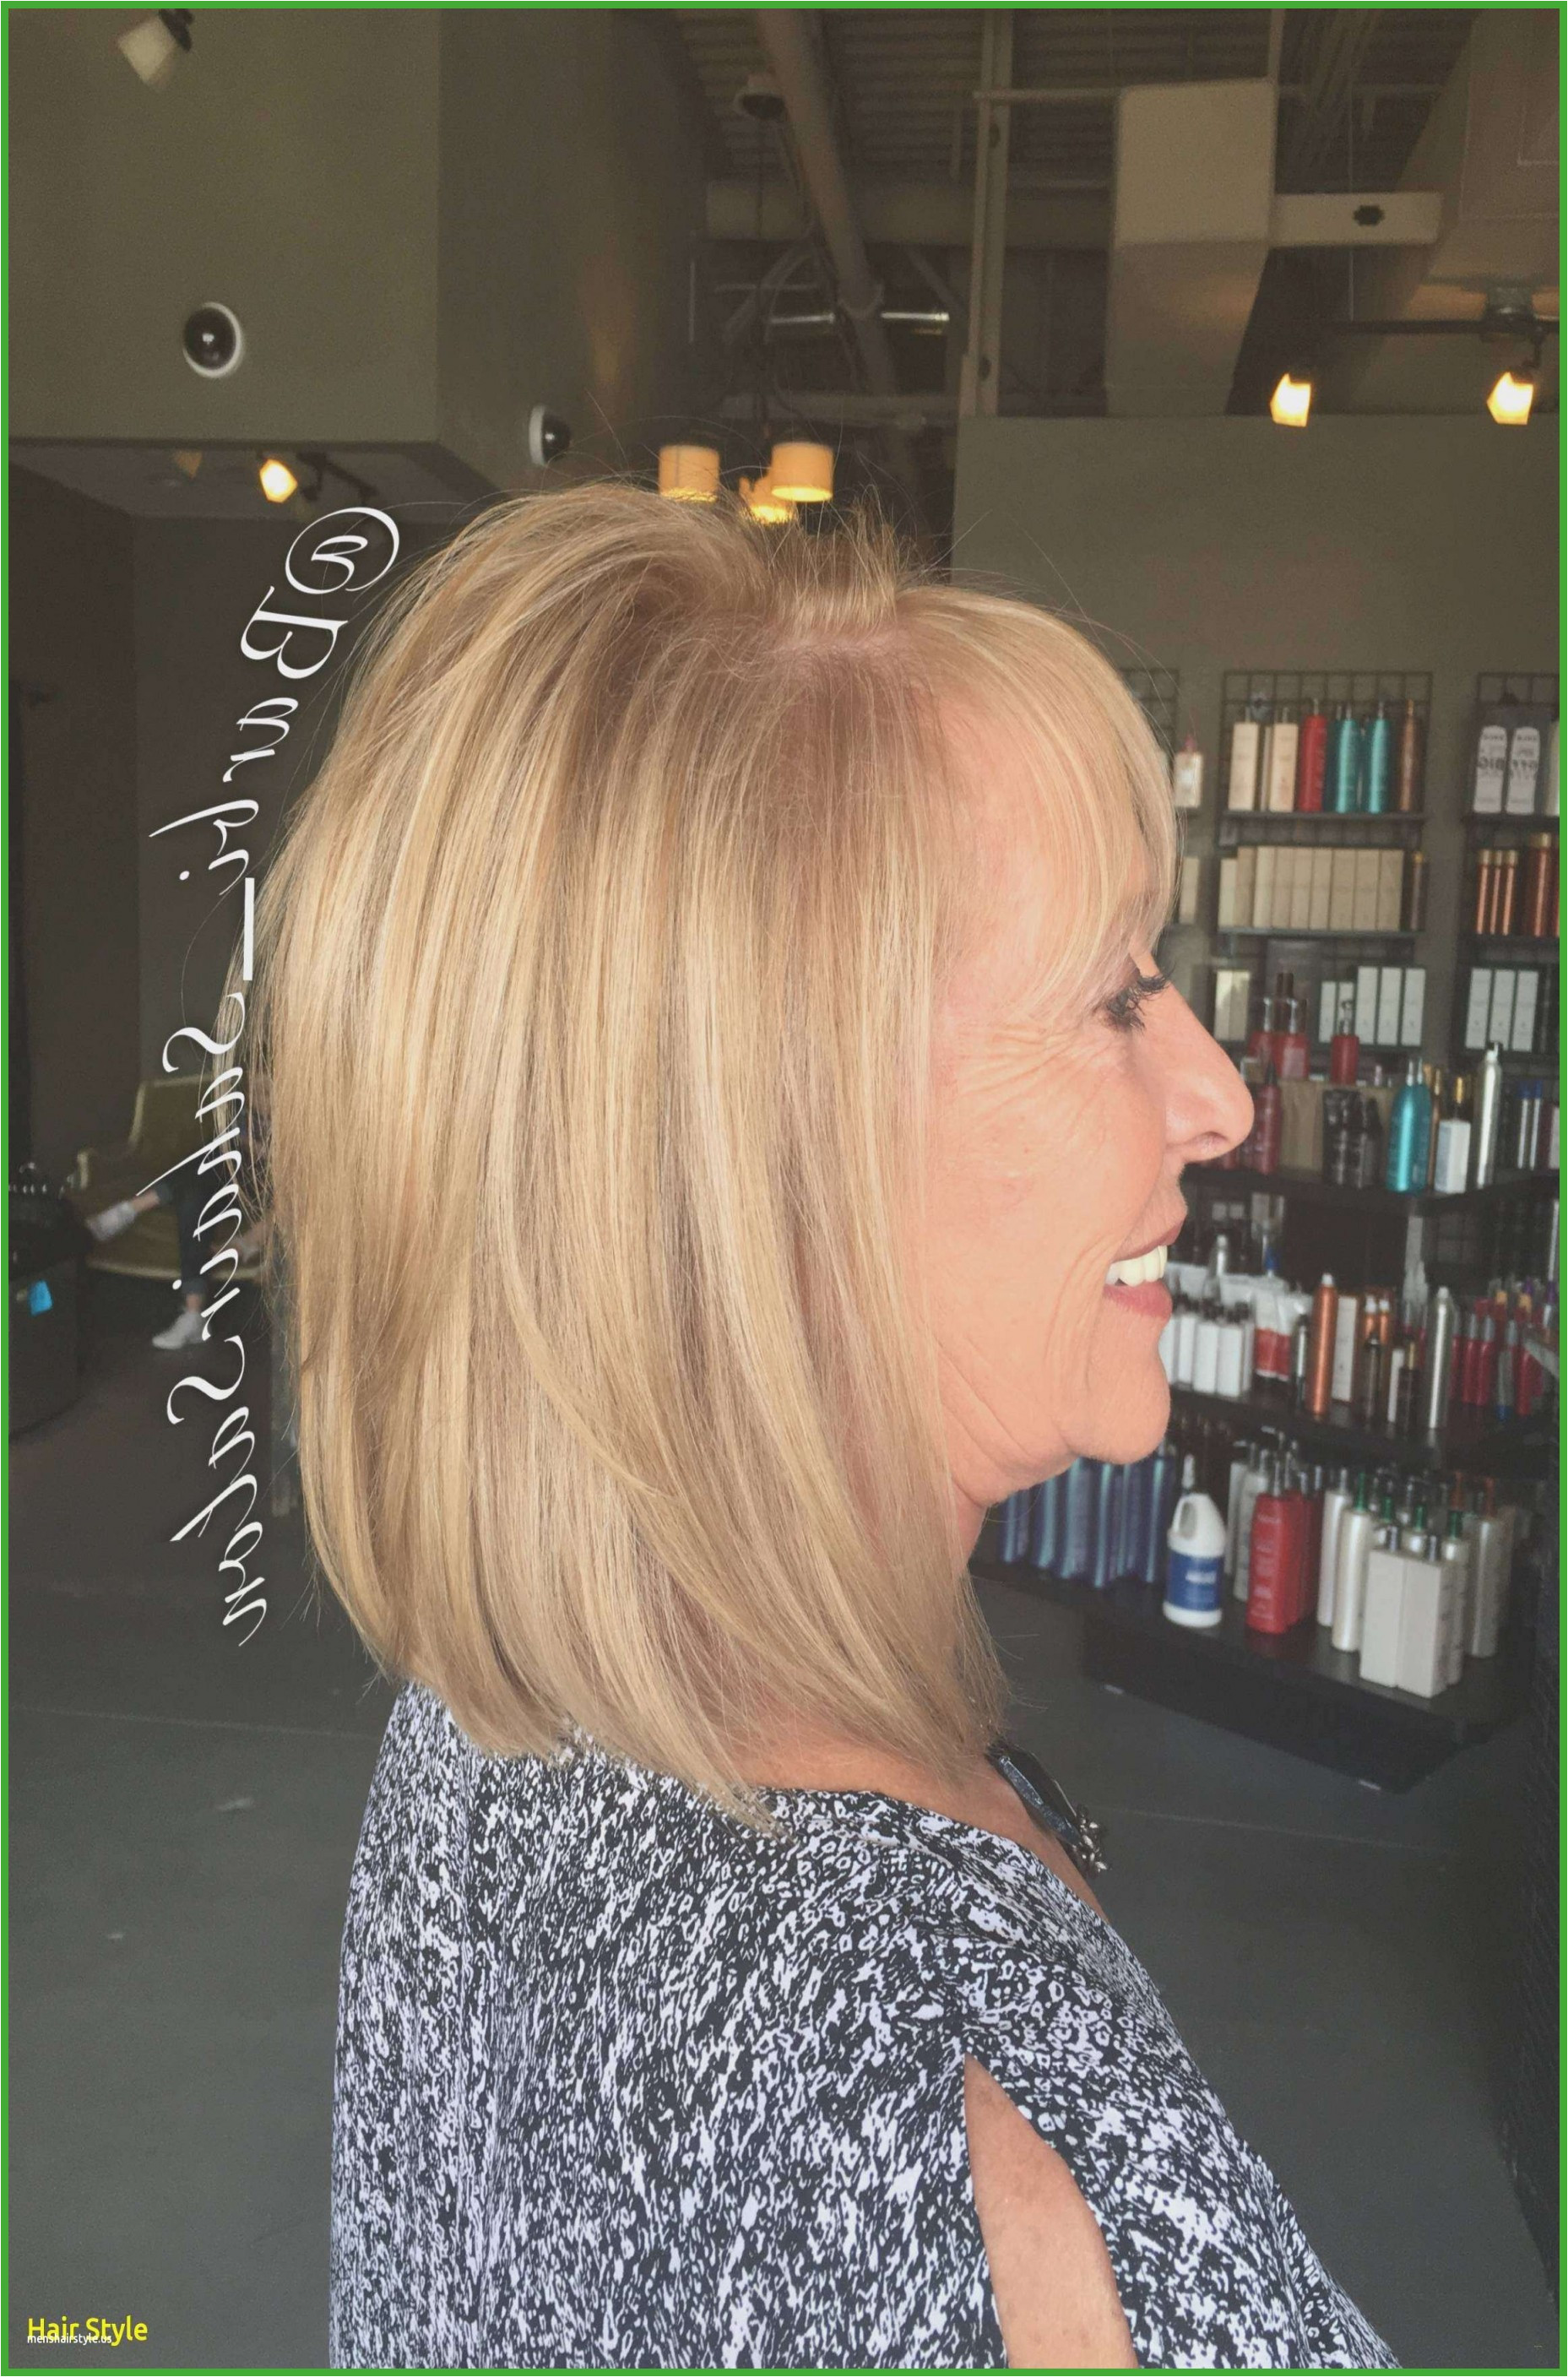 Hairstyles Over the Last 50 Years Hairstyles for Women Over 50 Best Hairstyle Ideas